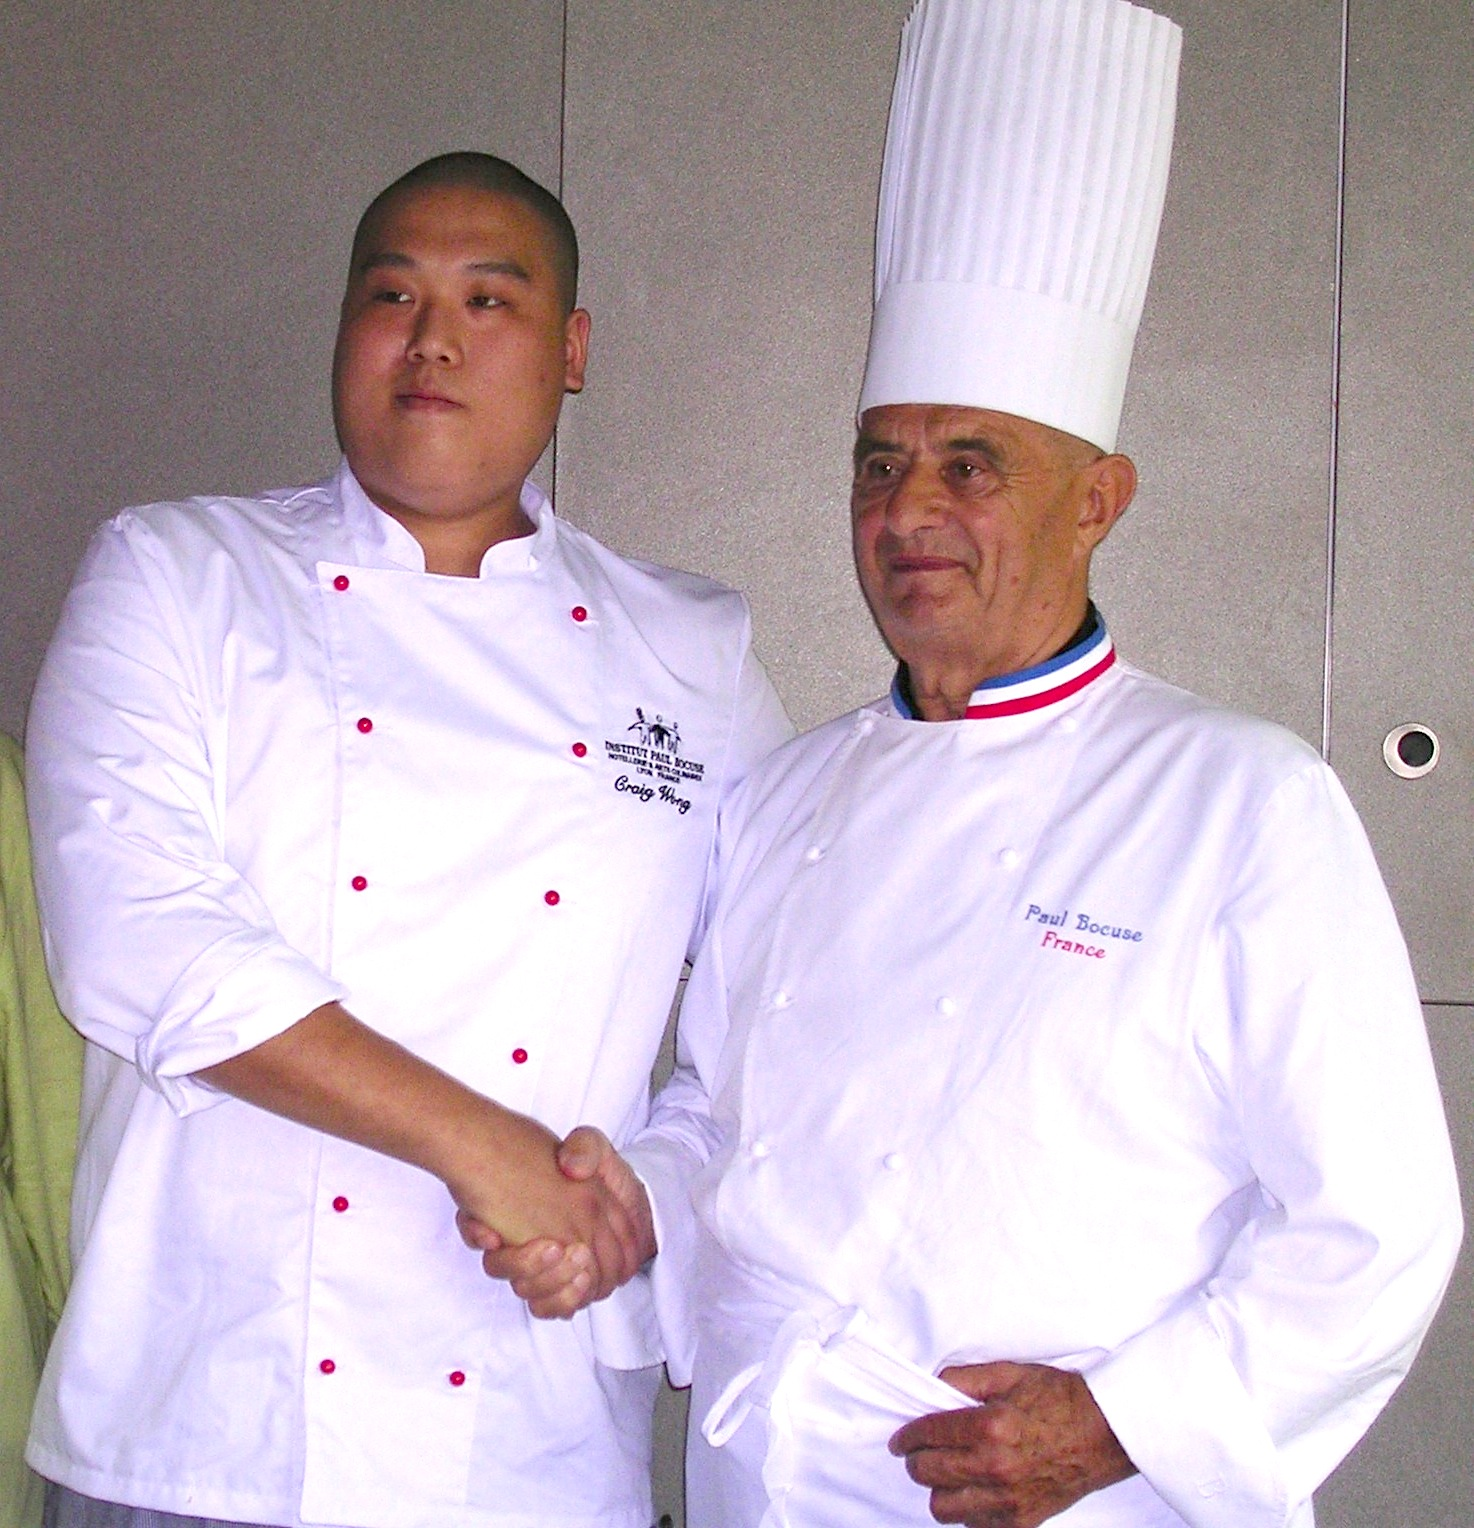 Graduation Ceremony with Chef Paul Bocuse